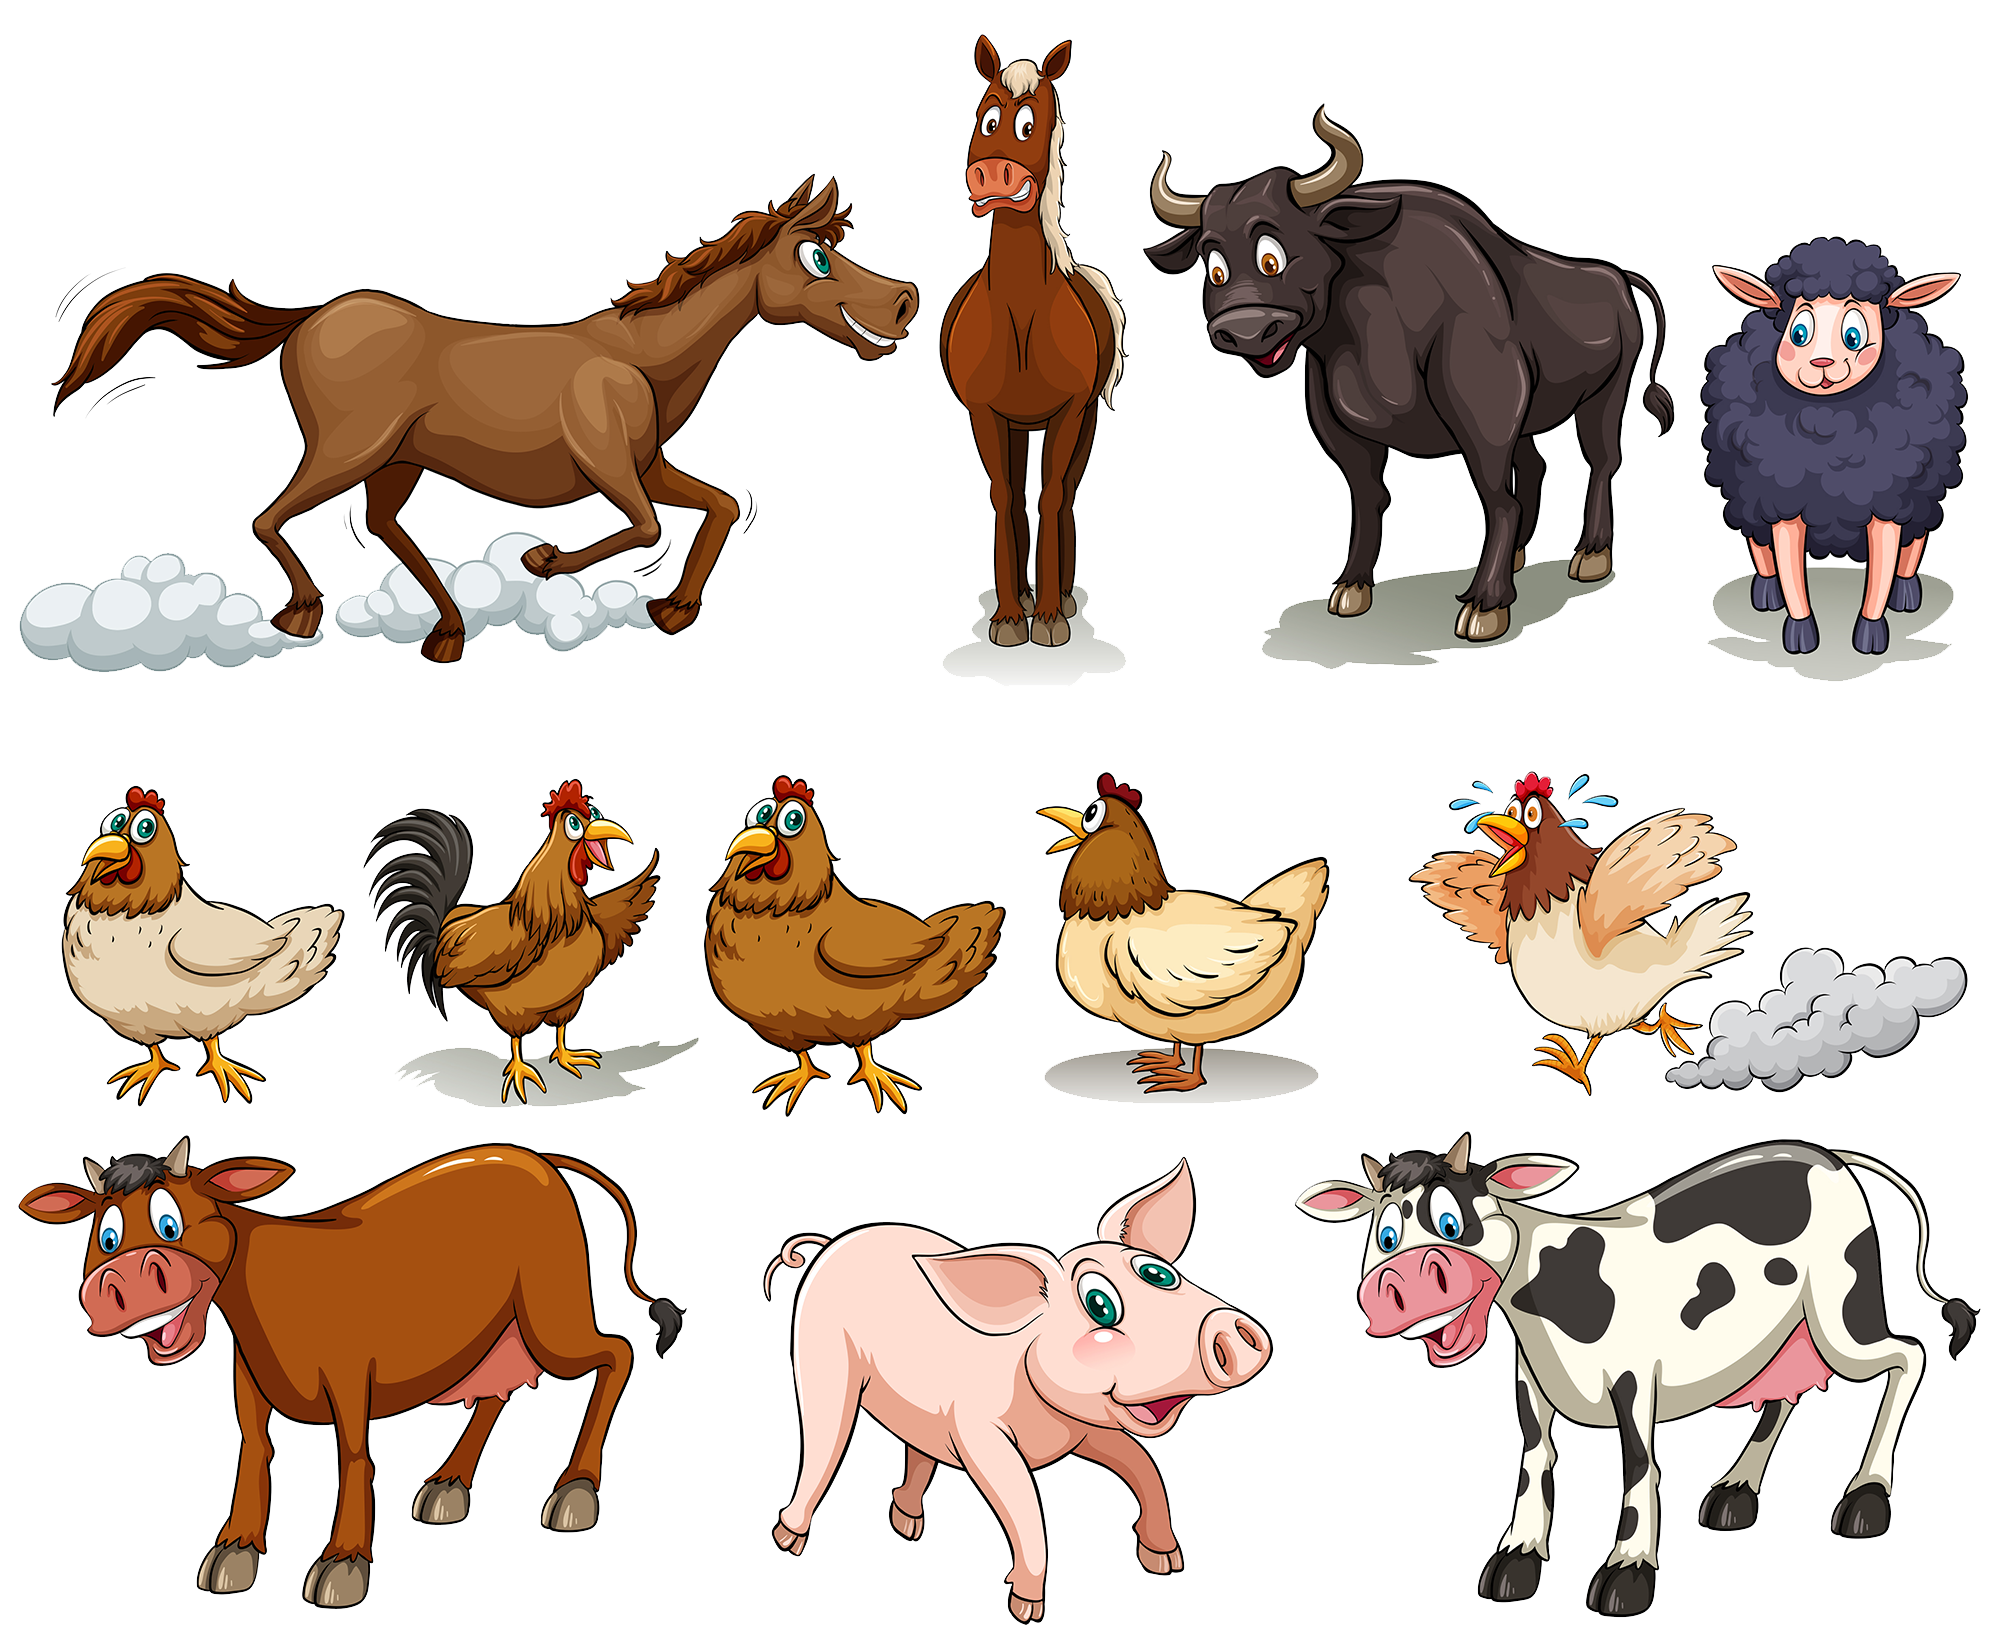 Farm animal png. Cattle chicken sheep domestic